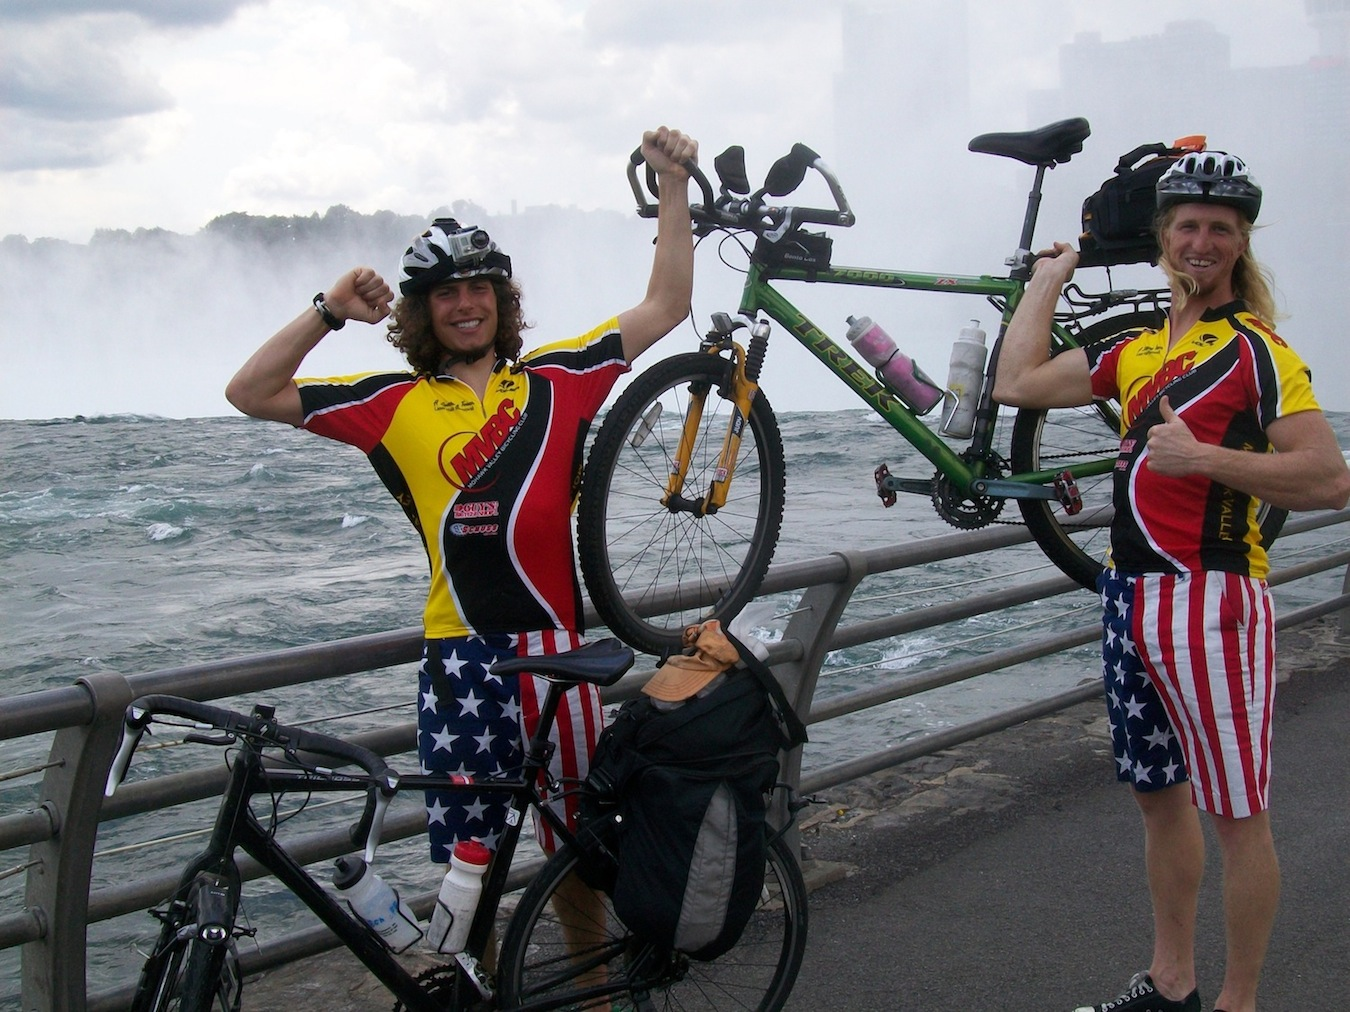 `Mike & Nate Bike the States` - including Niagara Falls. Surprisingly, they did not wear their trademark uniforms for these pictures.